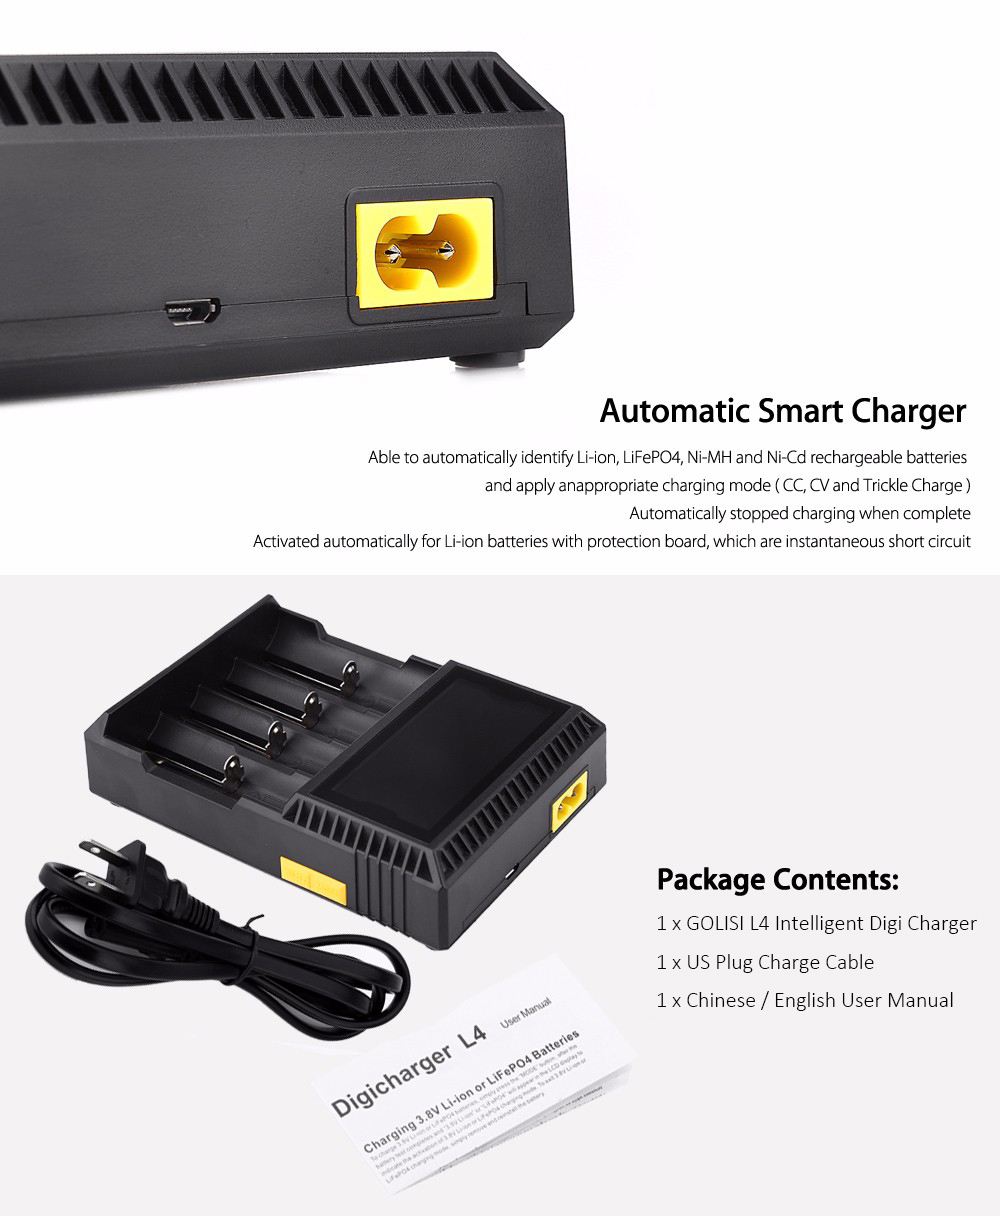 Original GOLISI L4 Intelligent Digi Charger with 4 Battery Slots / Automatic Identify Function / Three Charging Mode / LCD Screen Display for Most Batteries